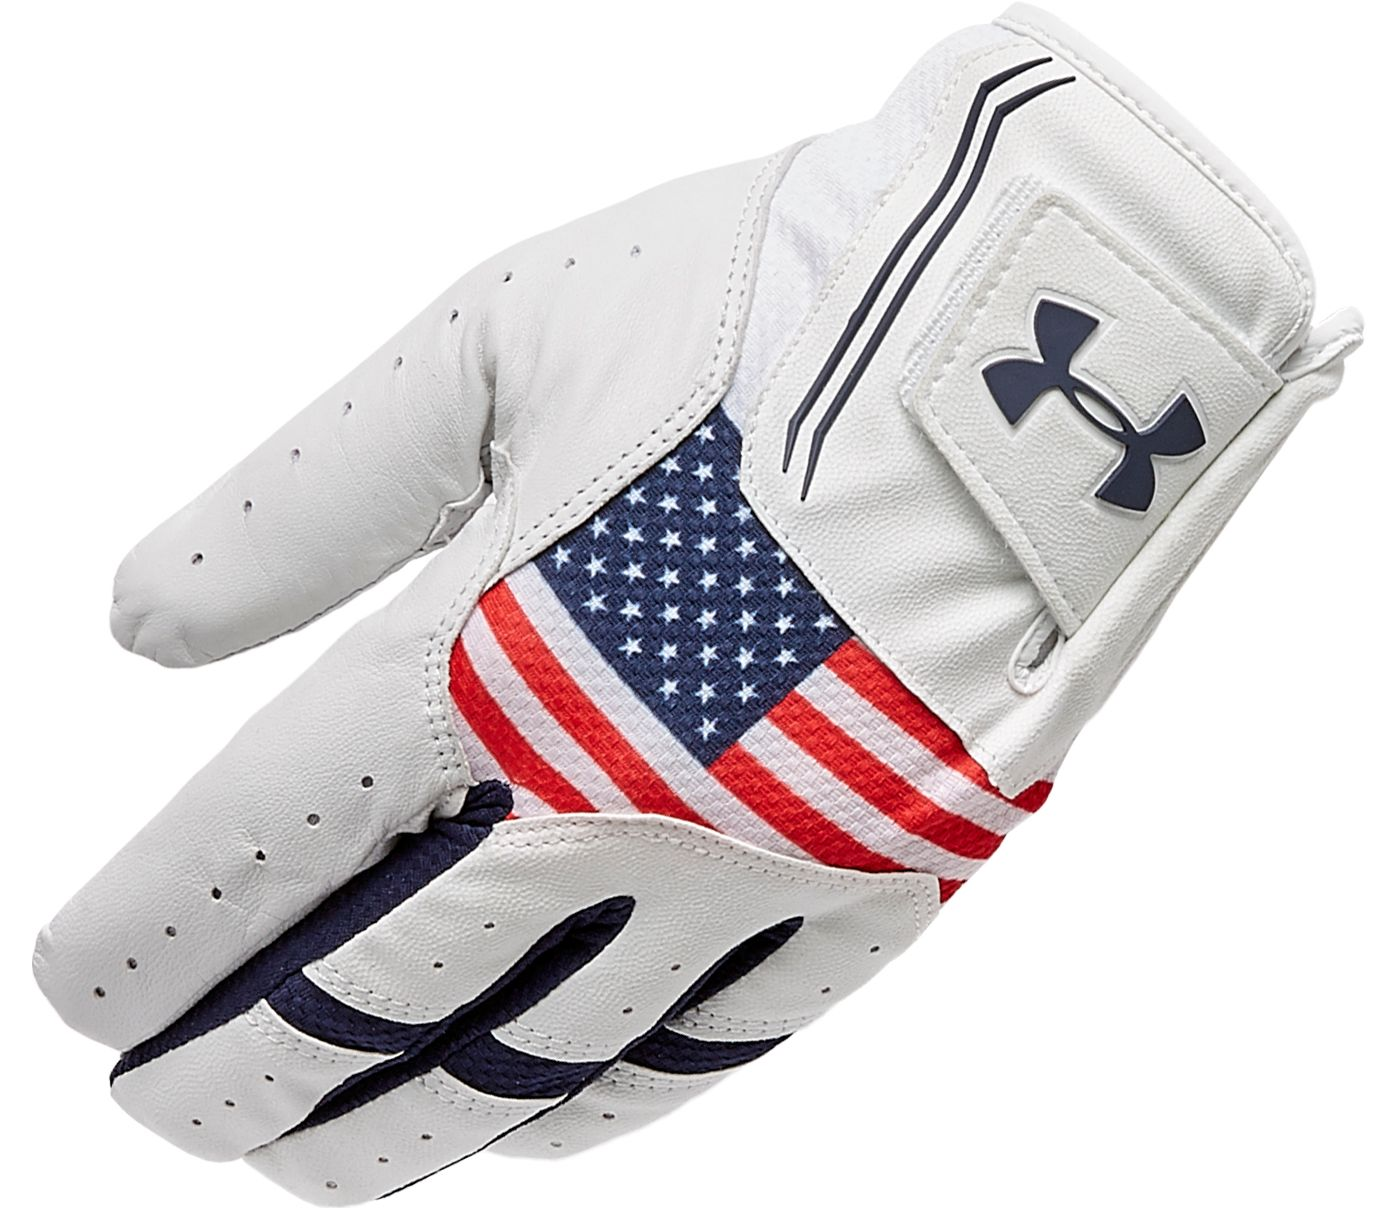 2019 Under Armour Iso Chill USA Golf Glove